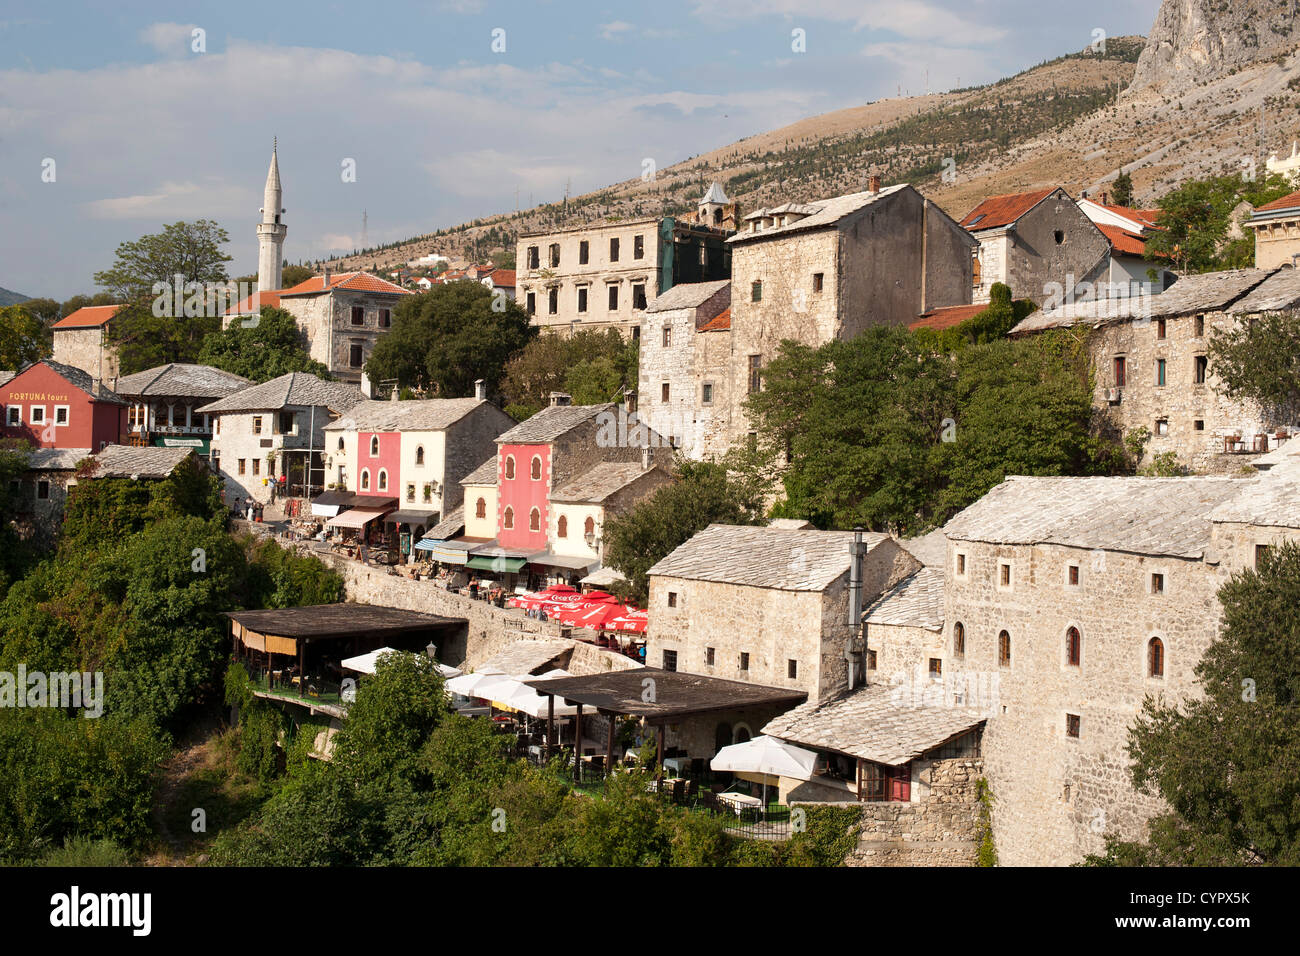 Buildings of the old town in Mostar in Bosnia and Herzegovina. - Stock Image